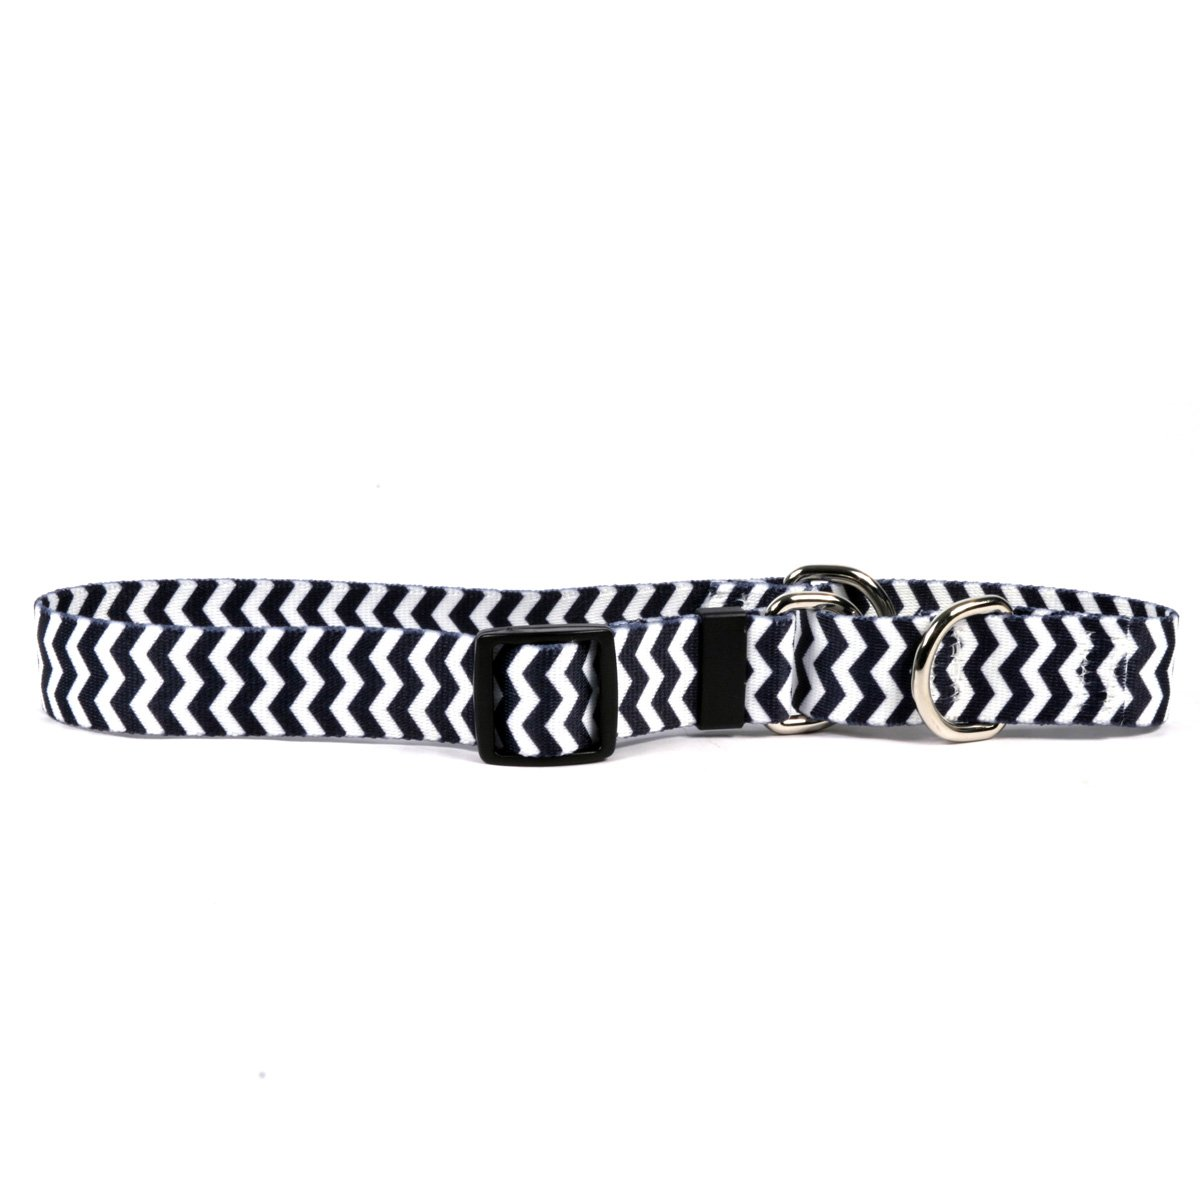 Chevron Licorice Martingale Control Dog Collar Size Extra Small 10  Long Made In The USA